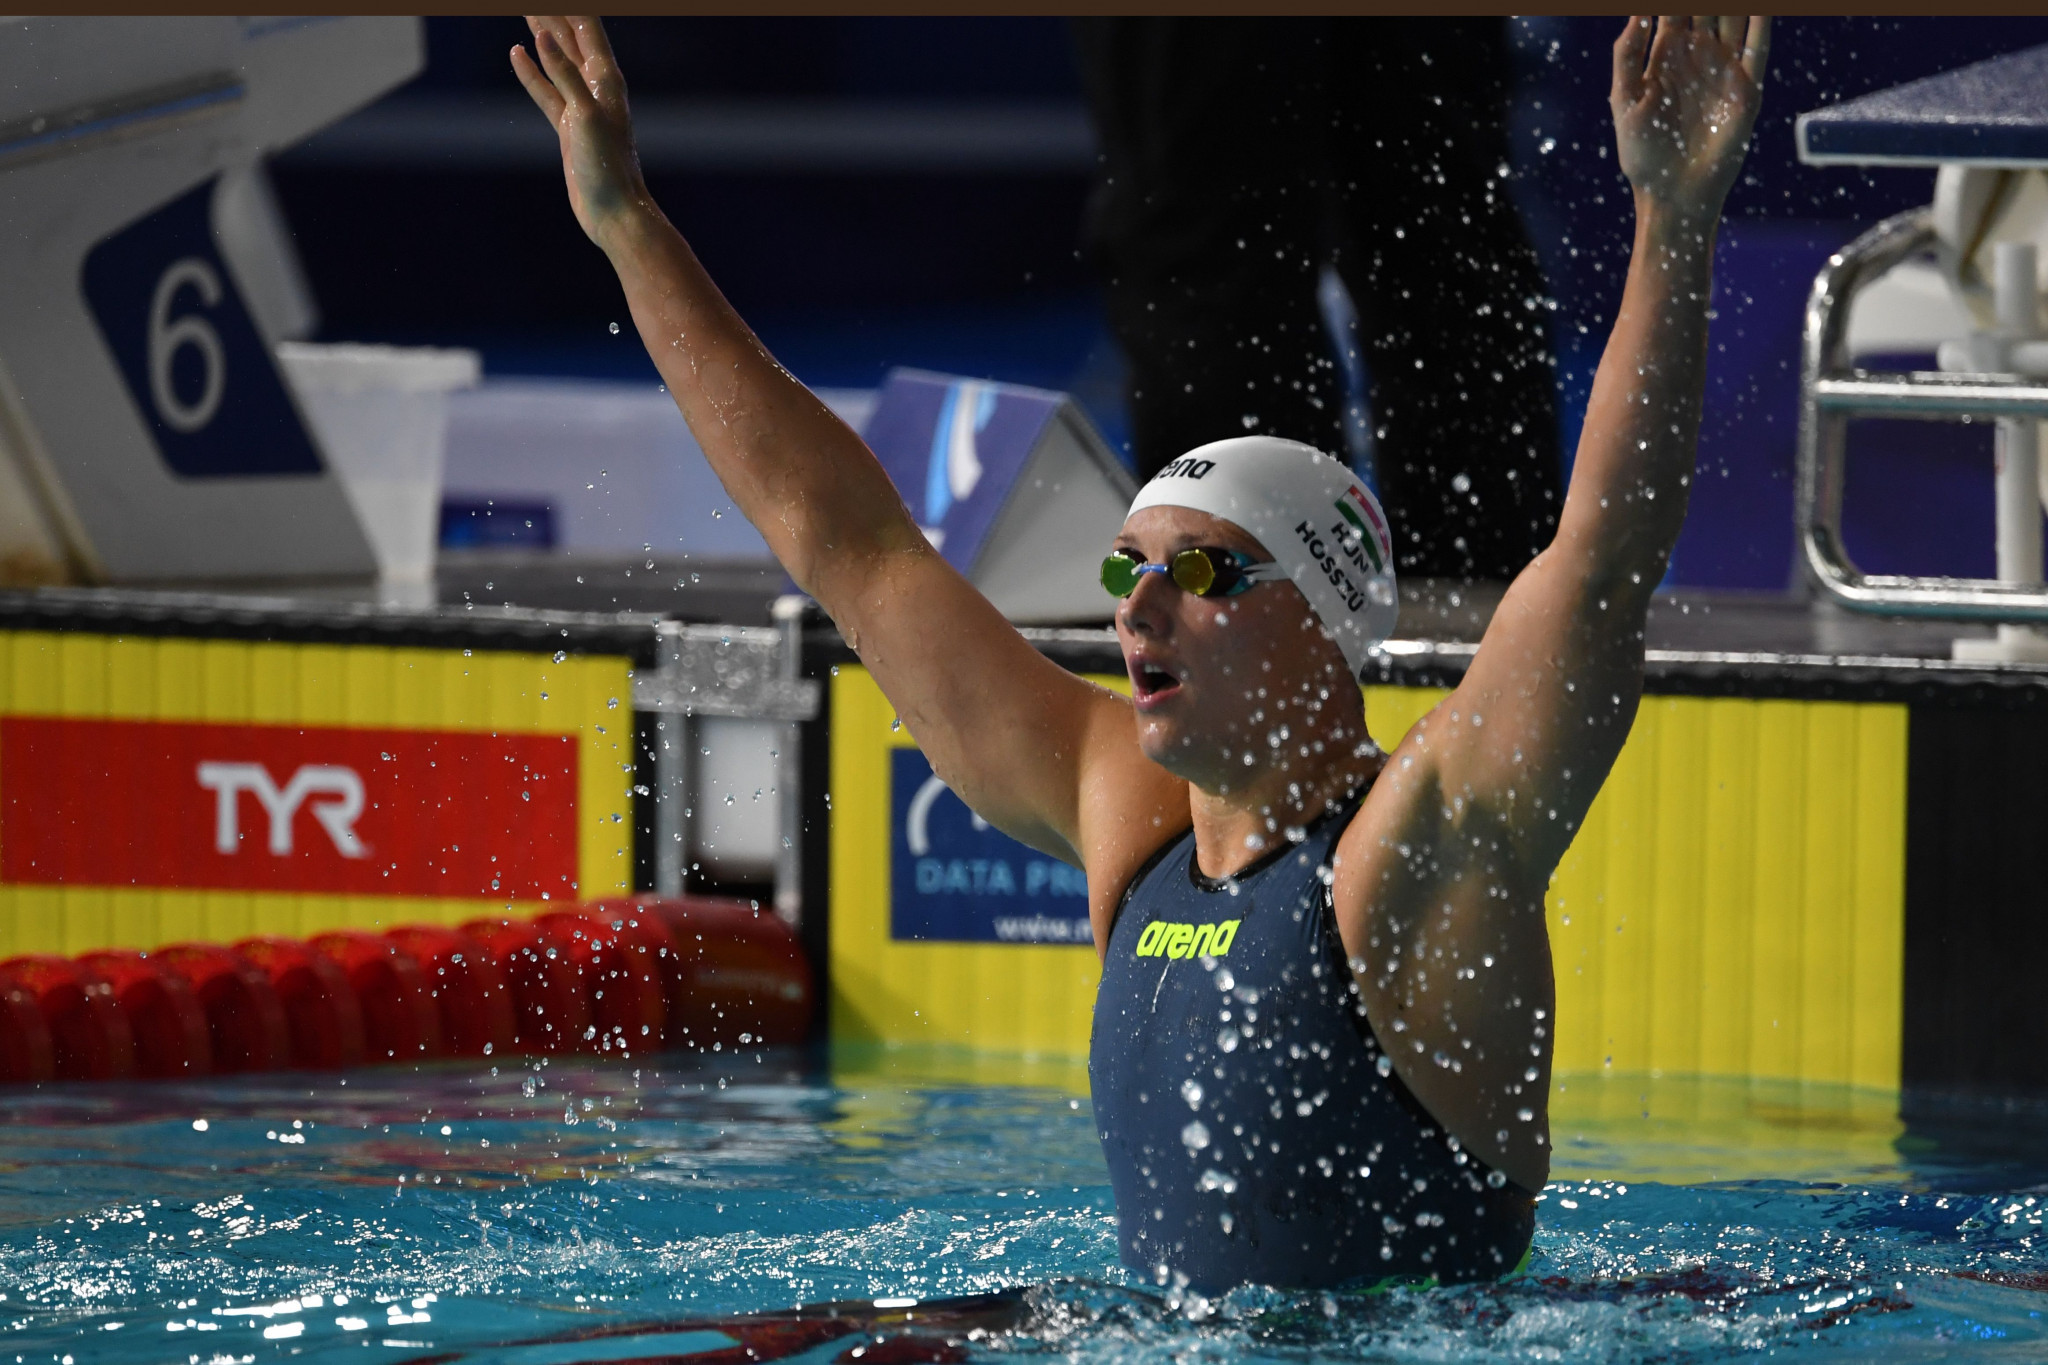 Doha set to stage second event of FINA World Cup season